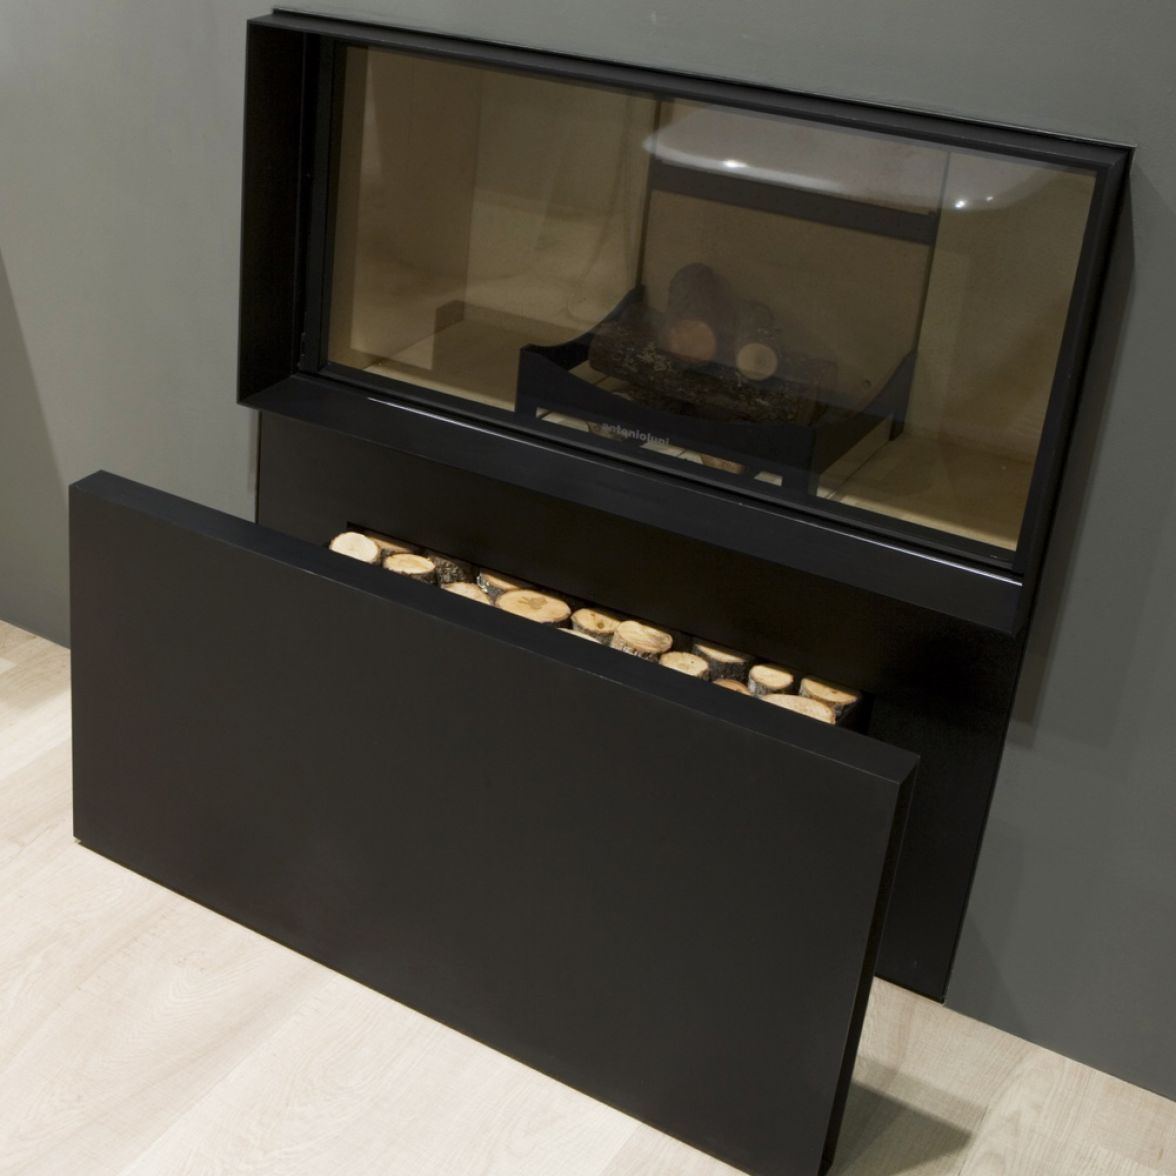 Skemabox Fireplace фото цена